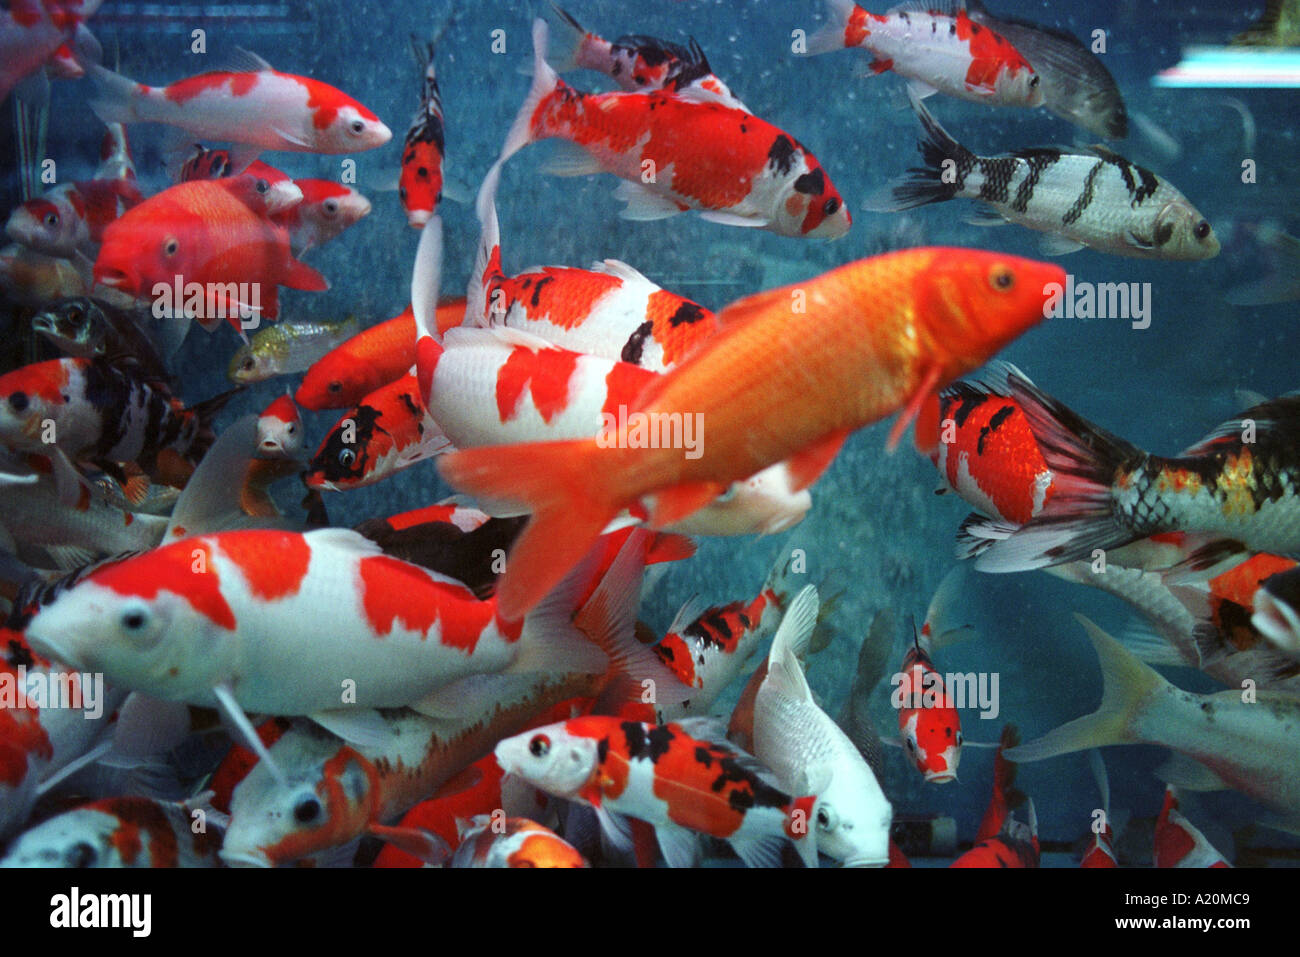 Koi carp fish charms of financial prosperity for sale in for Koi carp fish for sale